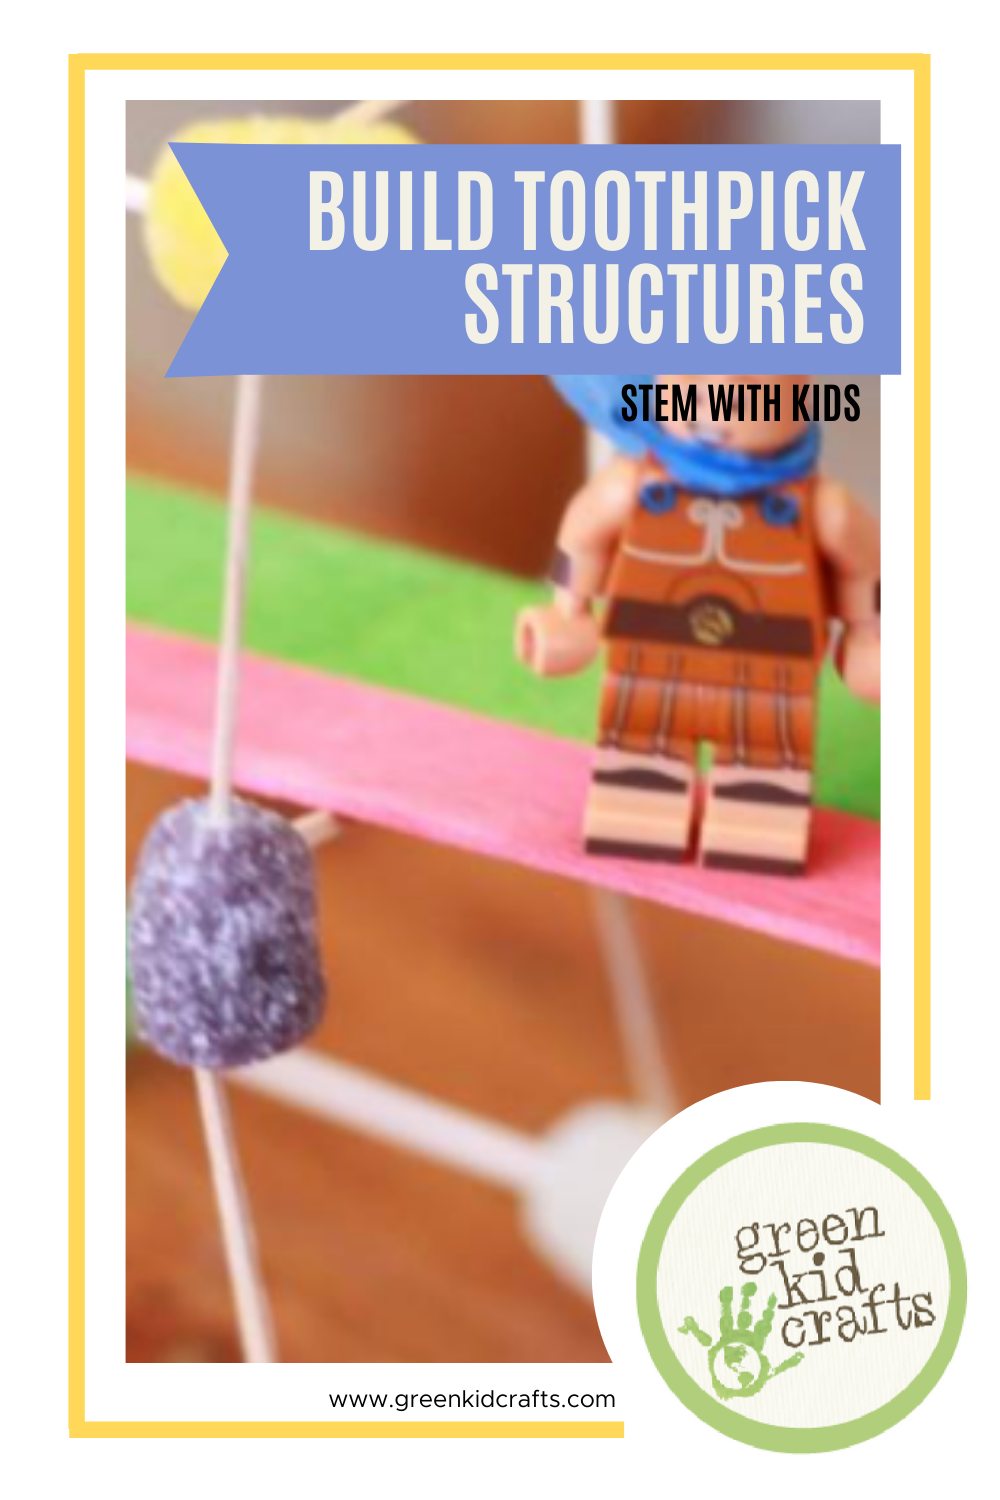 Build Toothpick Structures